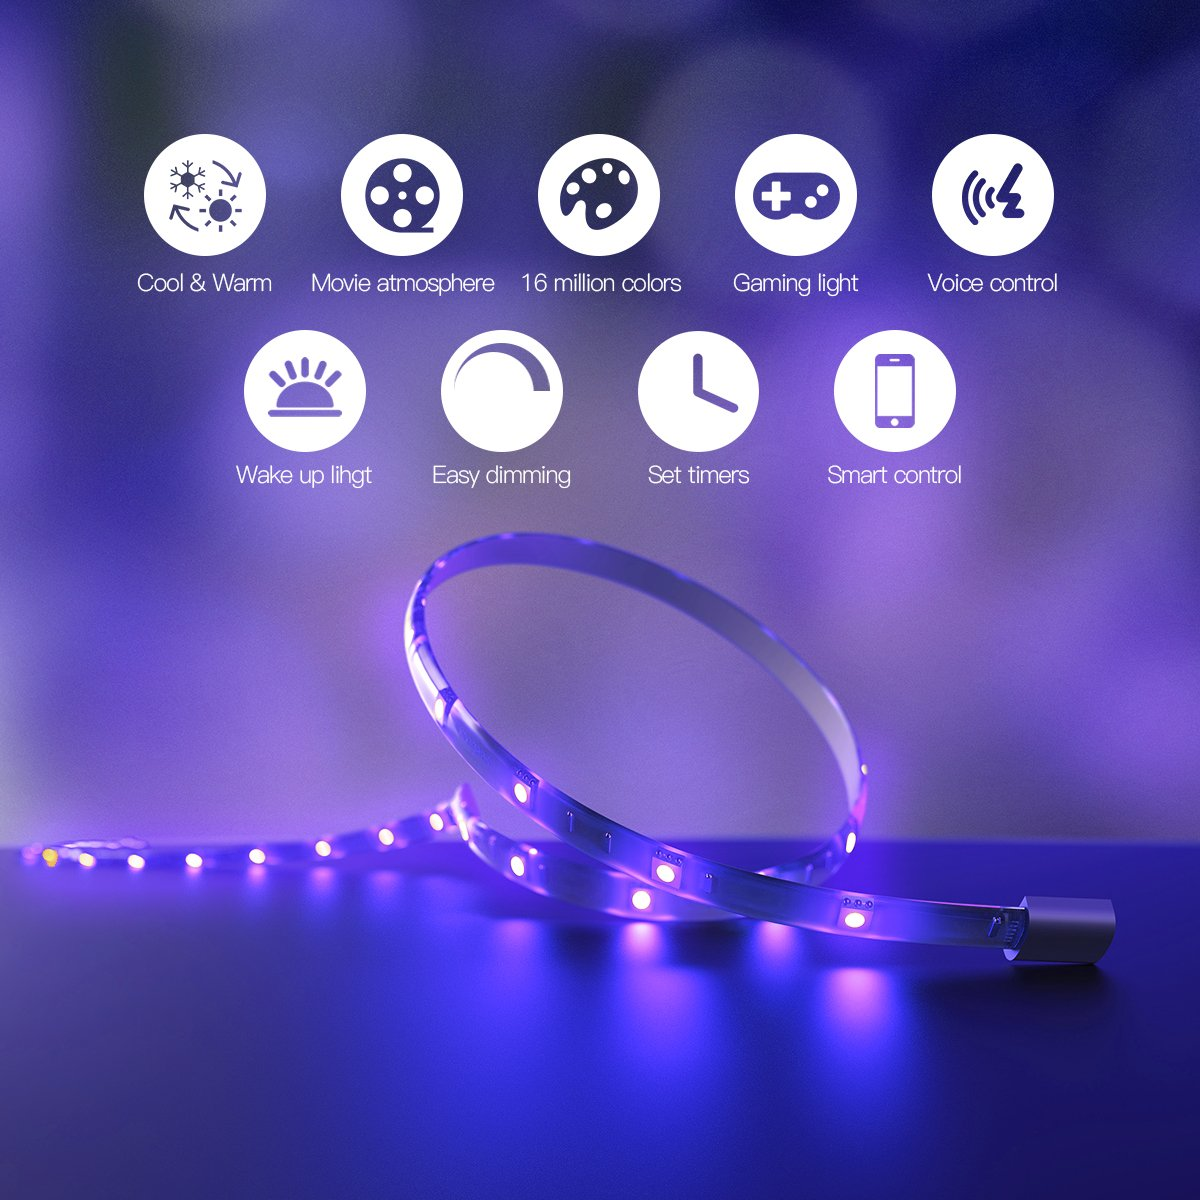 Koogeek Dimmable Smart LED Light Strip, Siri Timer Remote Control, 16000K Colors USB Powered 2m Compatible with Apple HomeKit, Android, Alexa, Alexa Echo and Google Assistant on 2.4Ghz by Koogeek (Image #2)